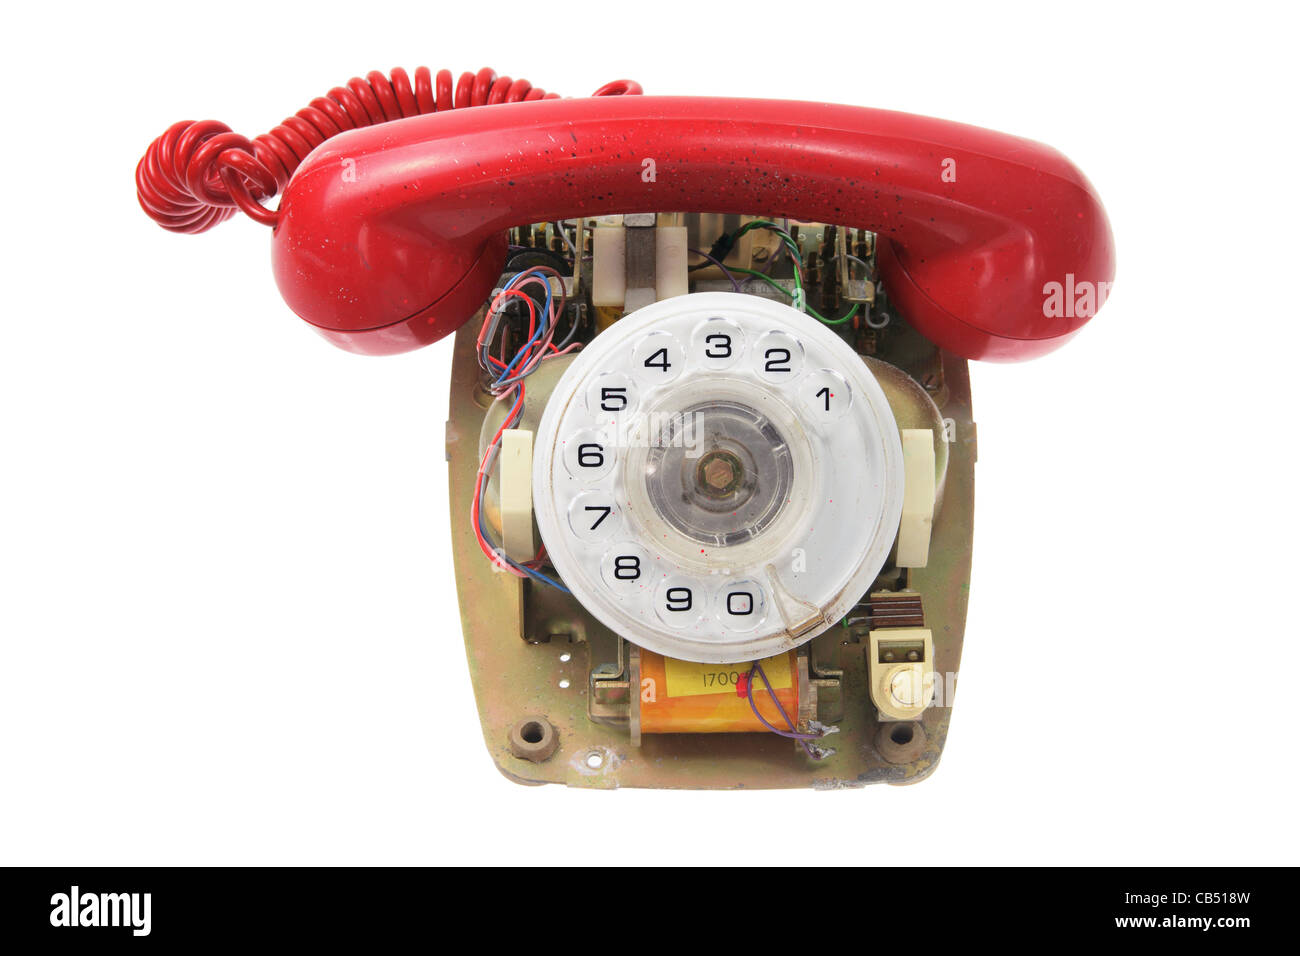 phone wiring stock photos phone wiring stock images alamy rh alamy com